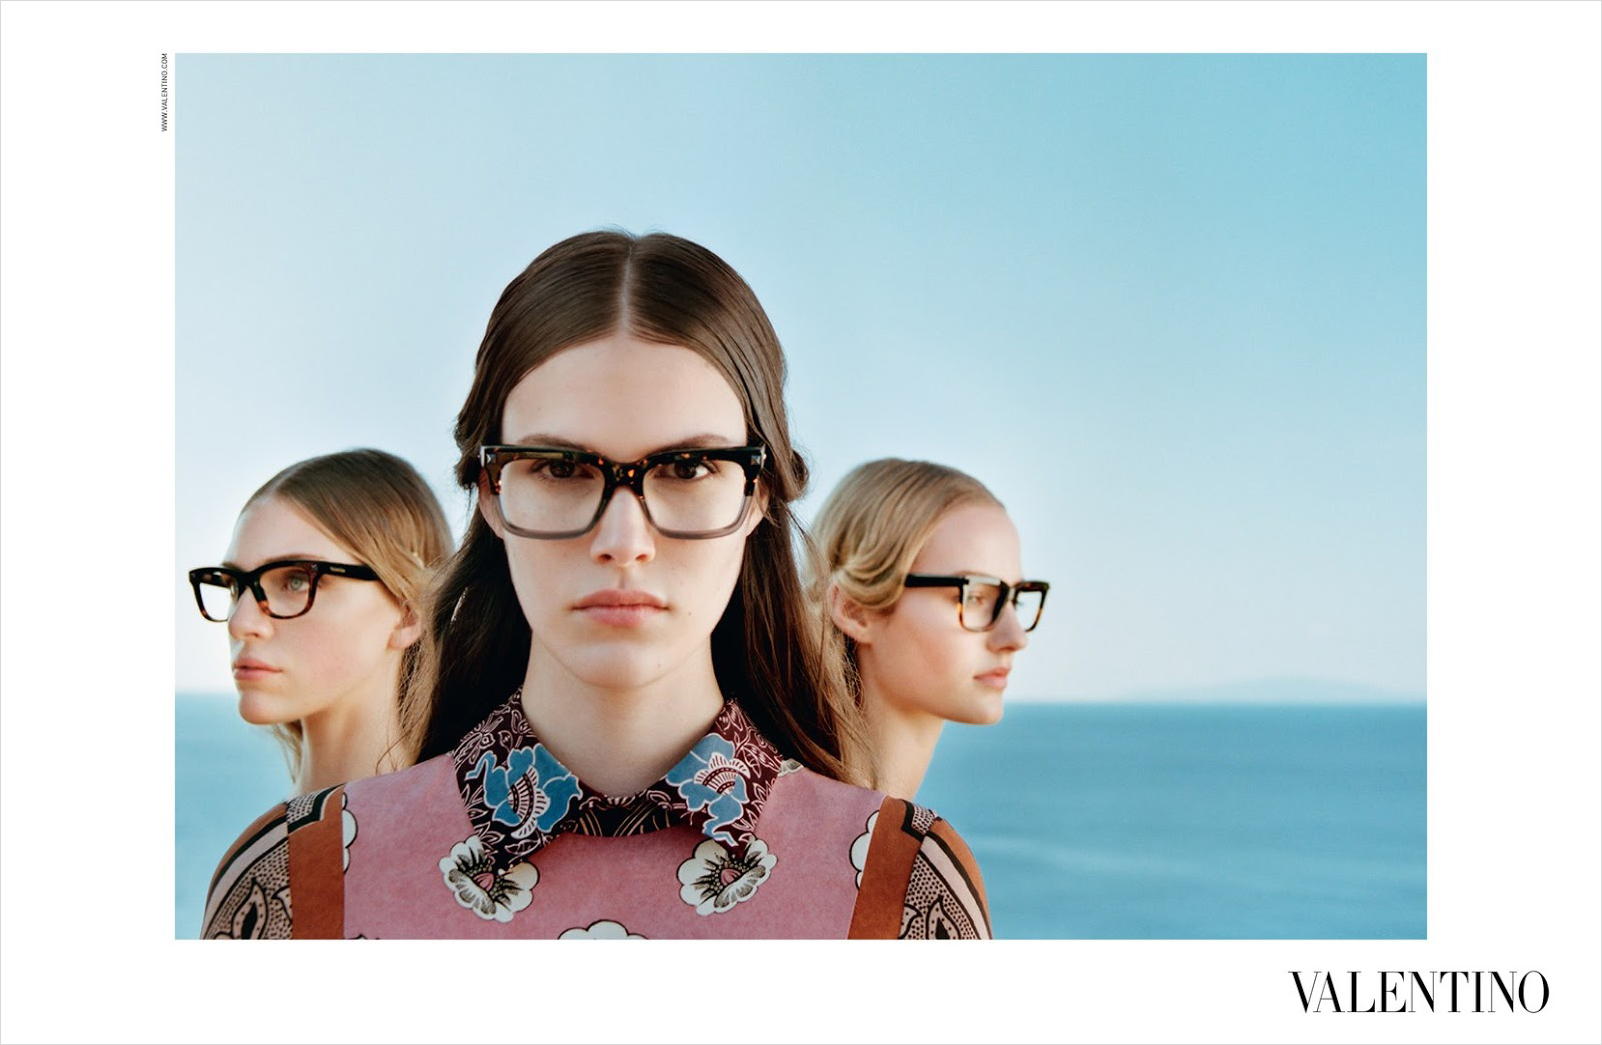 valentinospring-2015-ad-campaign-the-impression-17